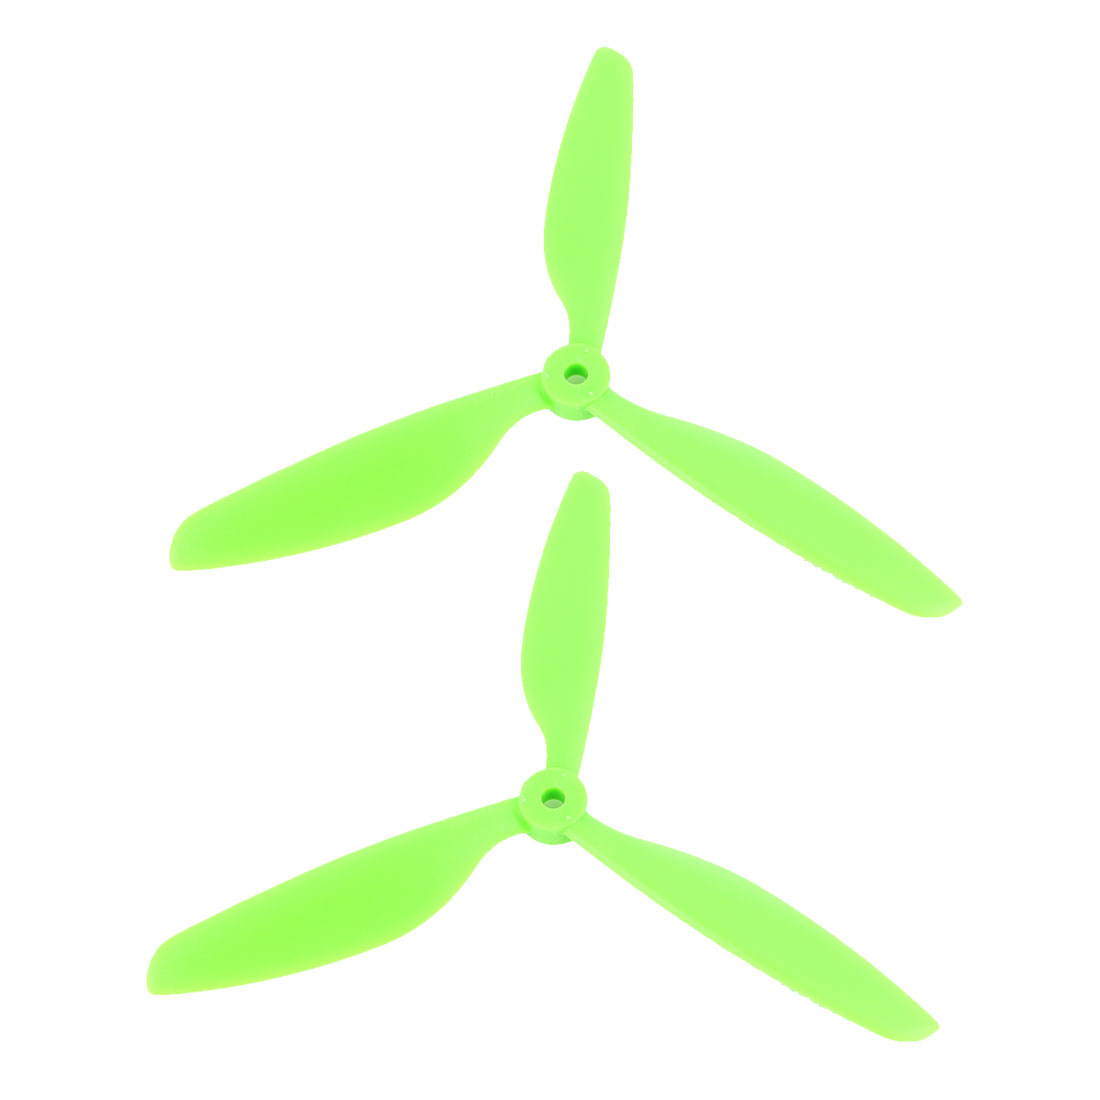 2Pcs Green Plastic RC Airplane Prop Propeller Paddle 9x4.5 + Shaft Adapter Rings